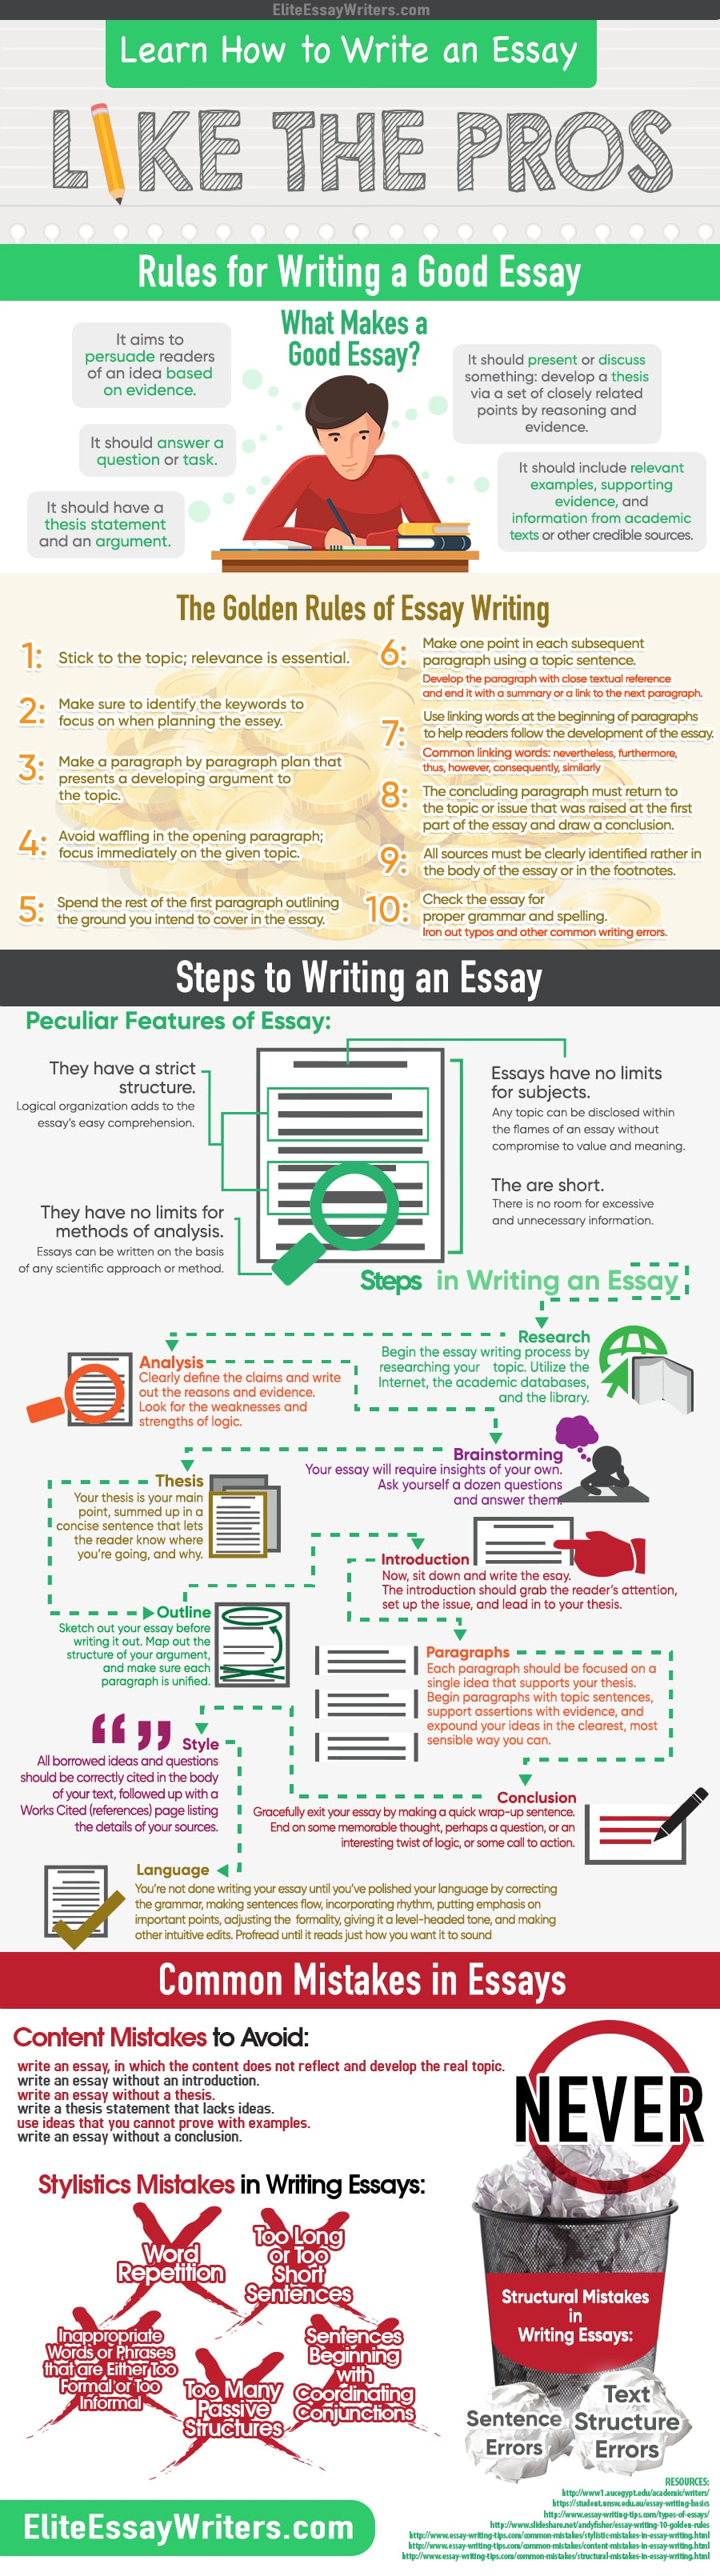 u for custom essay writing services We try to do our best to provide top-quality custom writing services online whether it is a research paper, essay or even dissertation all academic papers are professionally written from scratch by skilled writers.